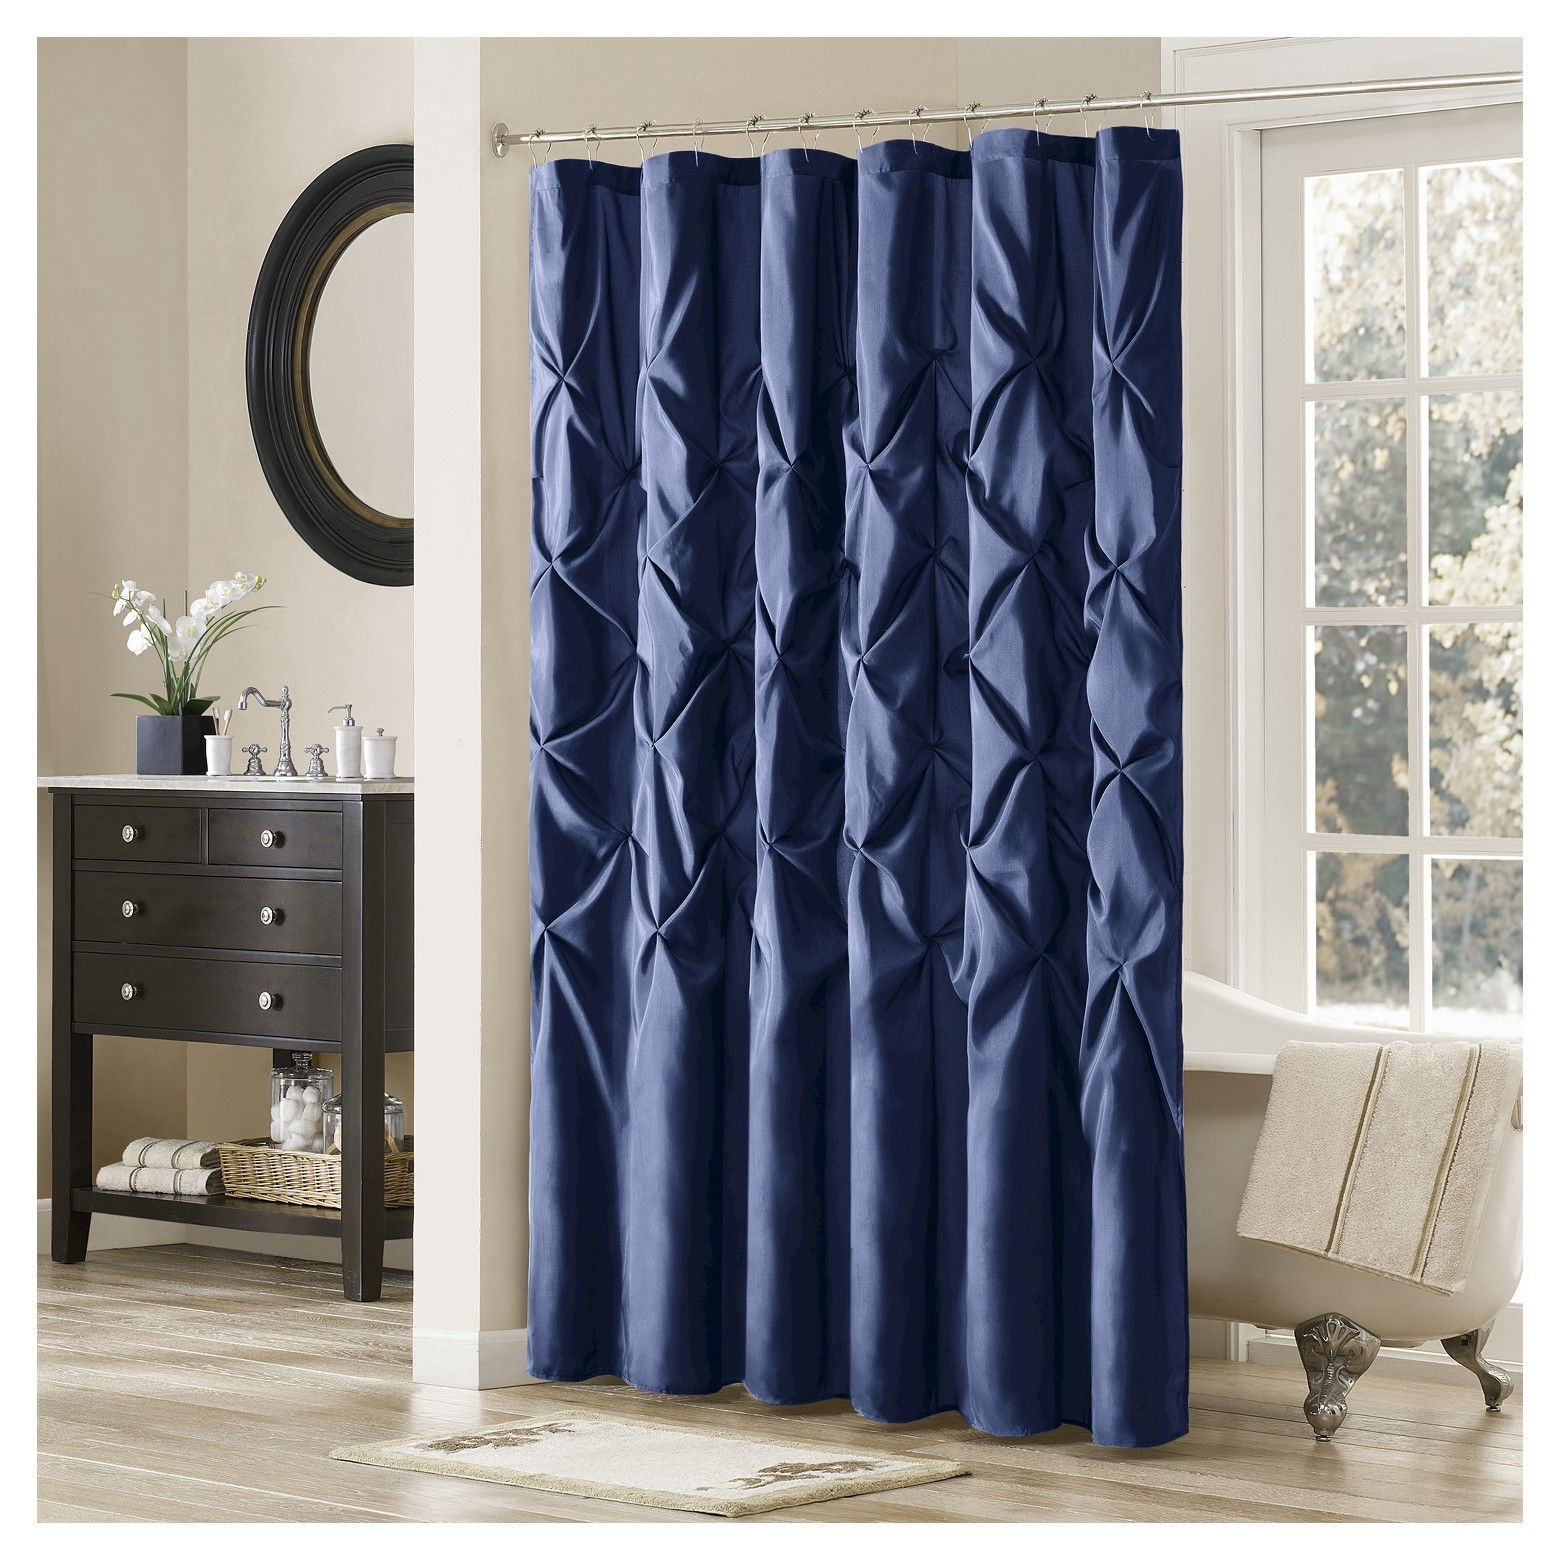 Update Your Bathroom Instantly With The Piedmont Faux Silk Shower Curtain Large Tufting Creates A Contemporary Look While Adding Value To Space